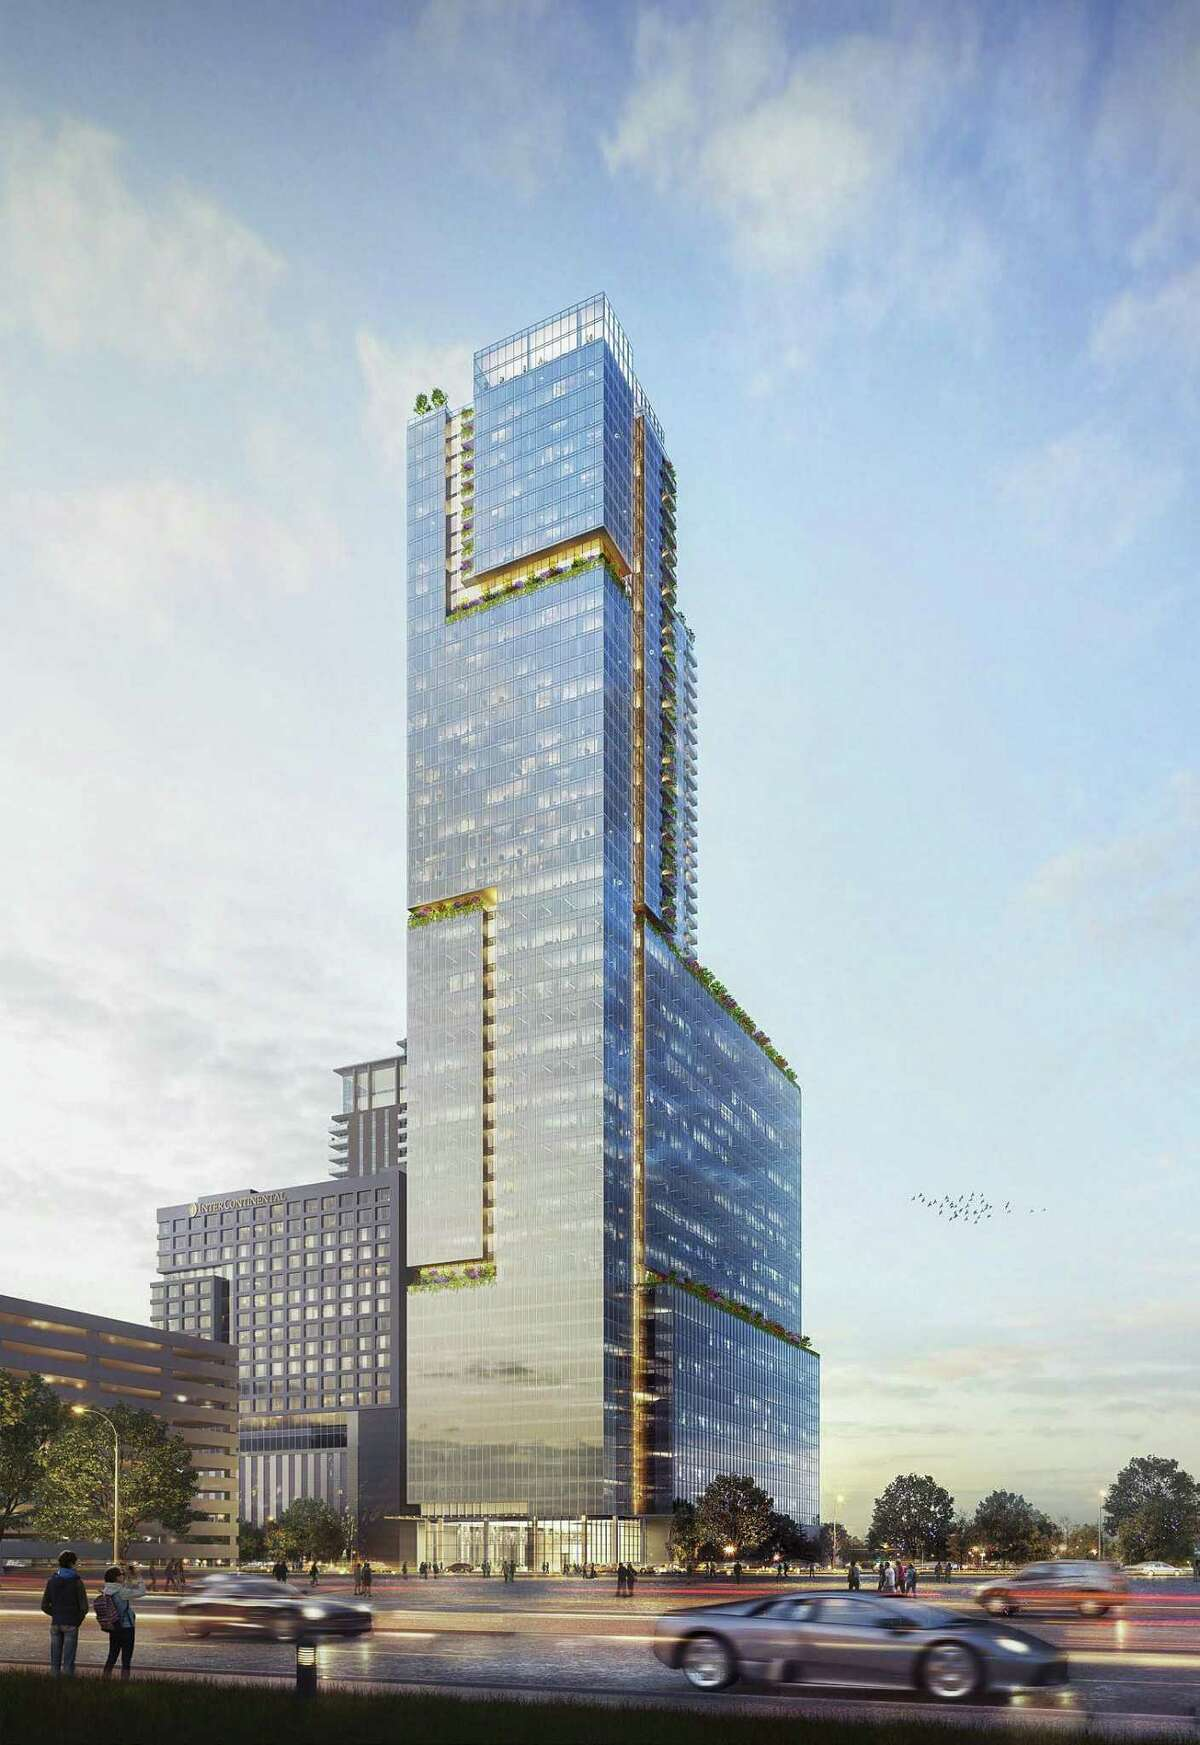 A rendering of the proposed mixed-use Innovation Tower in the med center.